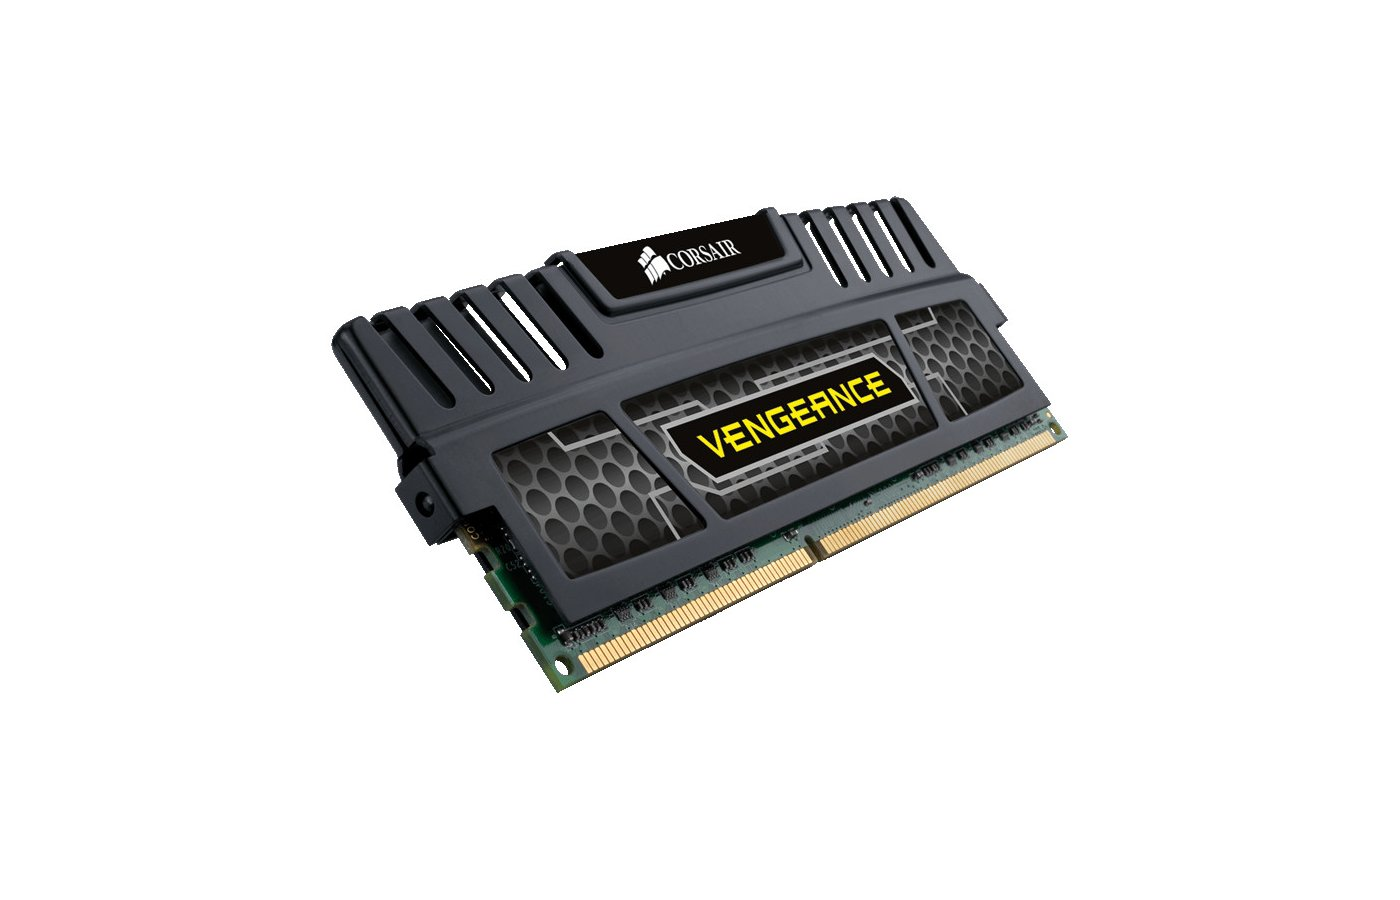 Оперативная память Corsair CMZ8GX3M2A1600C9 RTL PC3-12800 DDR3 2x4Gb 1600MHz CL9